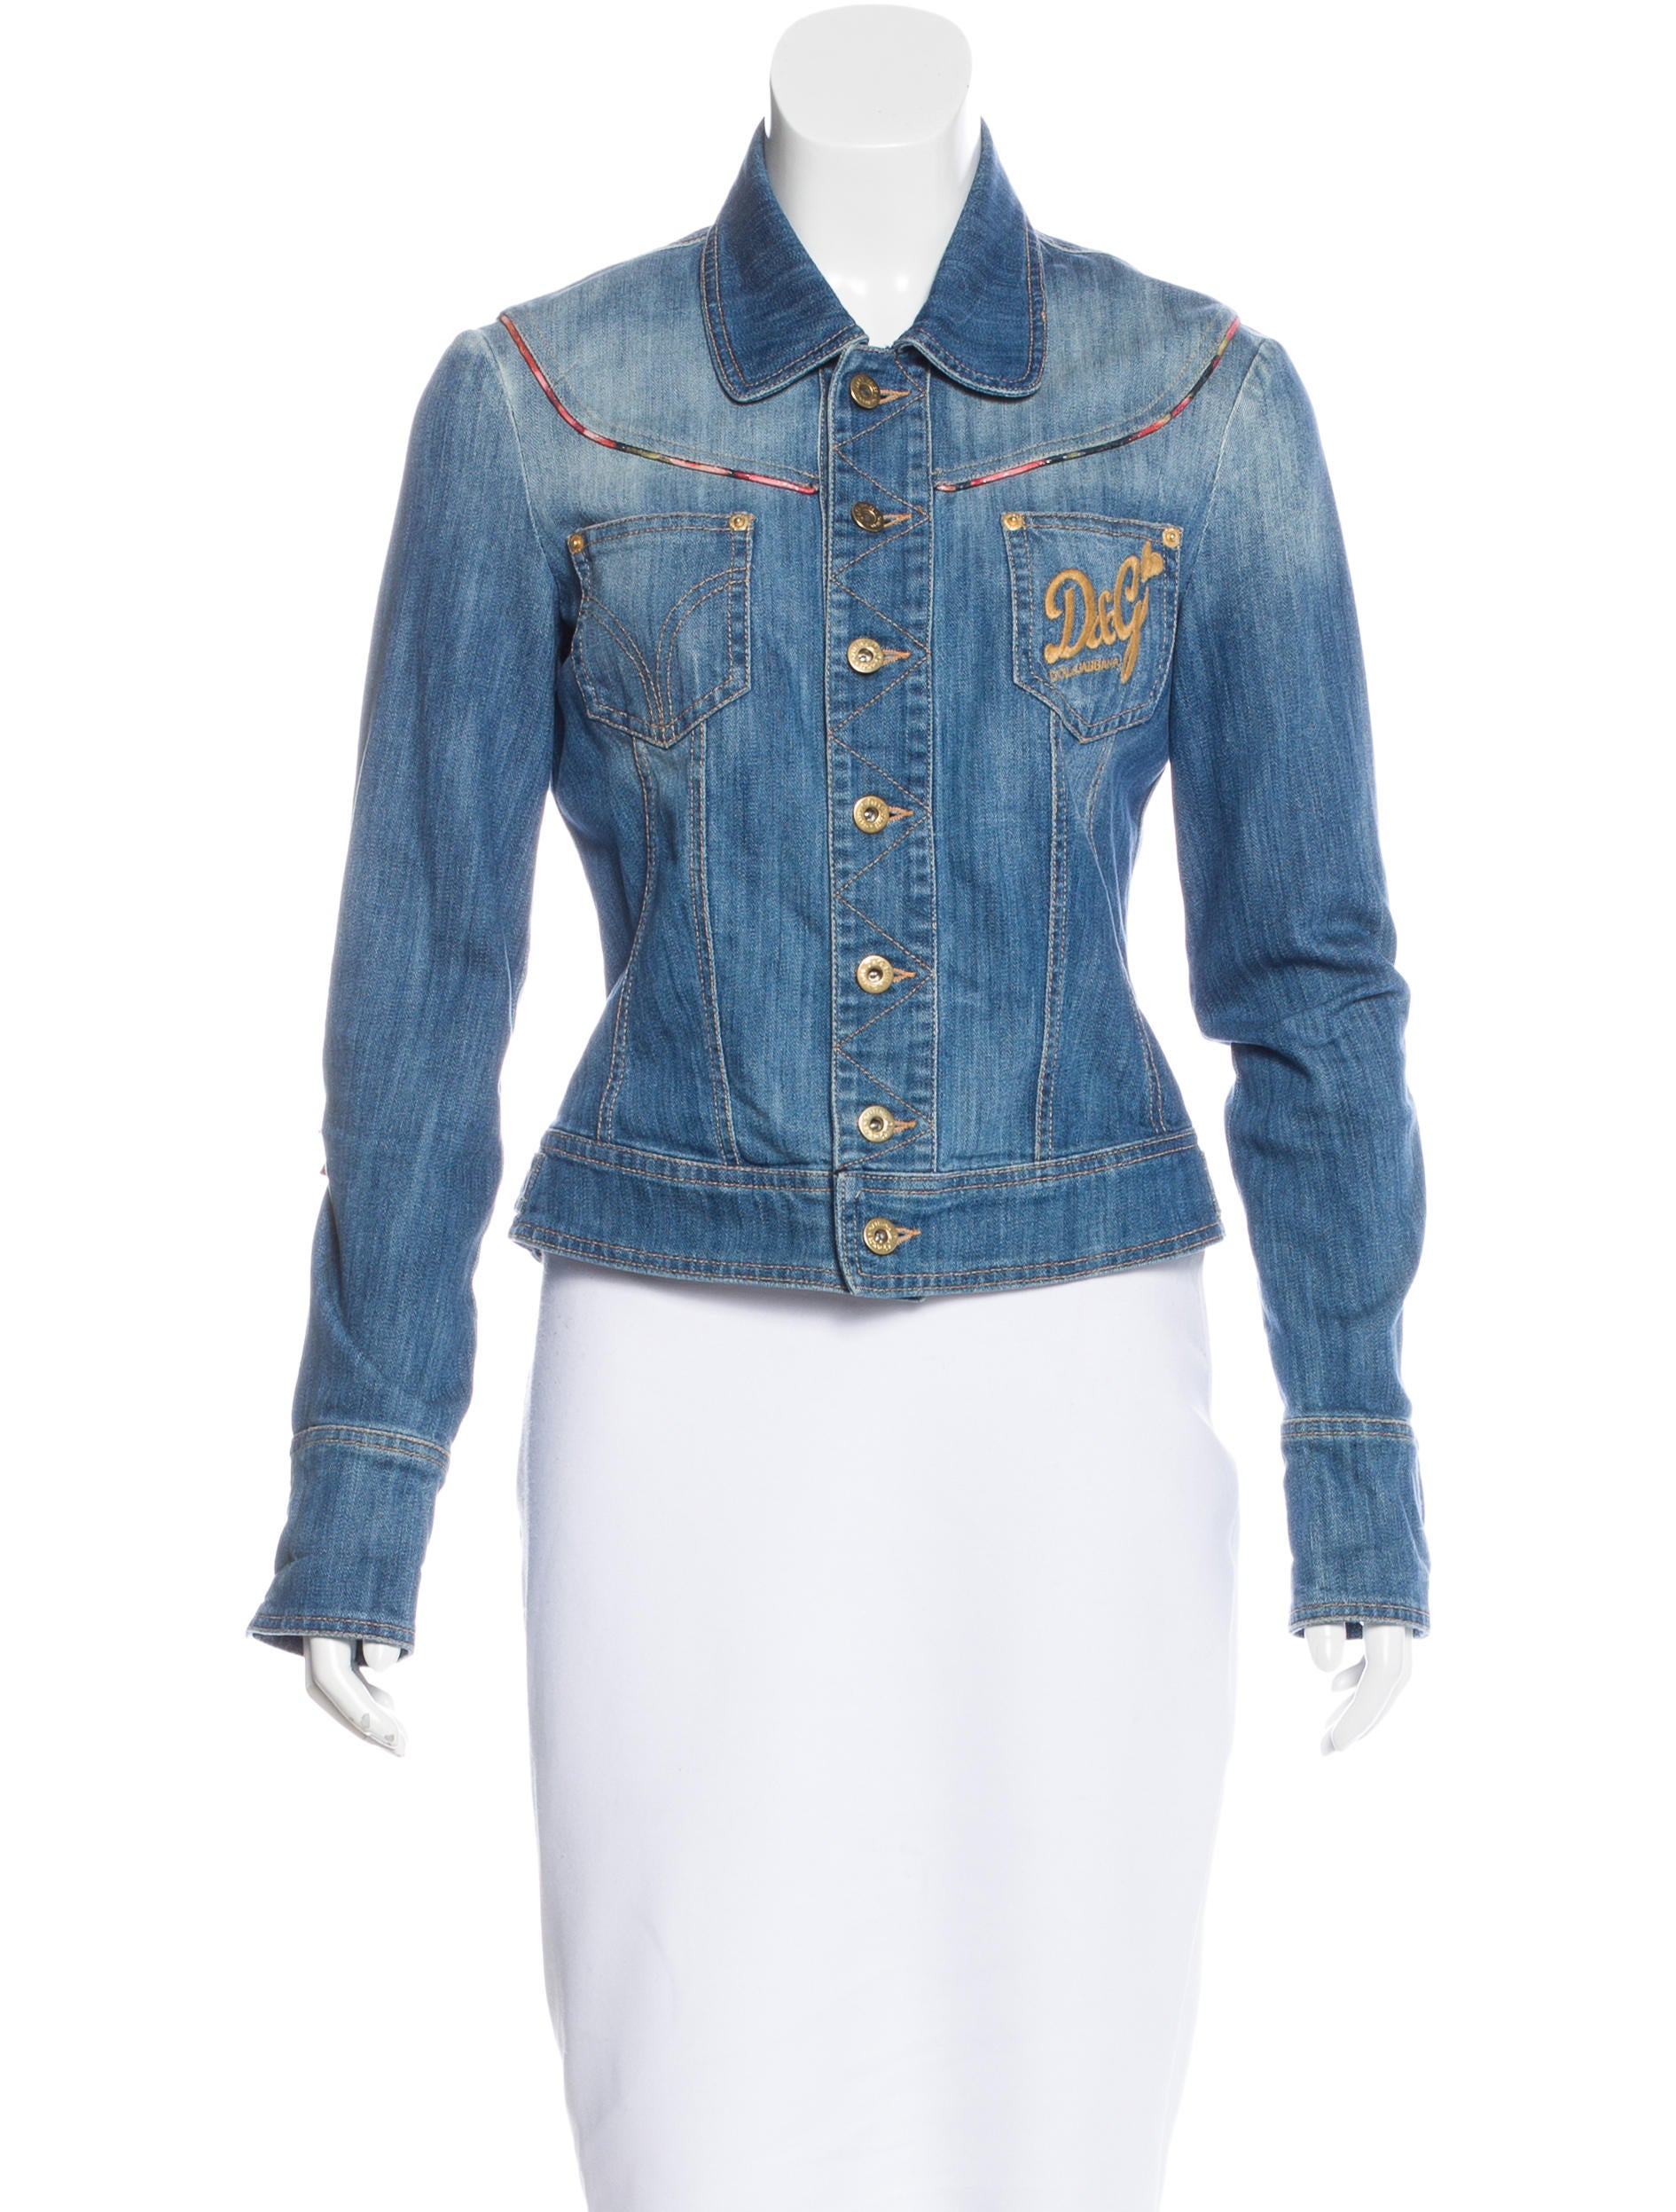 D g embroidered jean jacket clothing wdg the